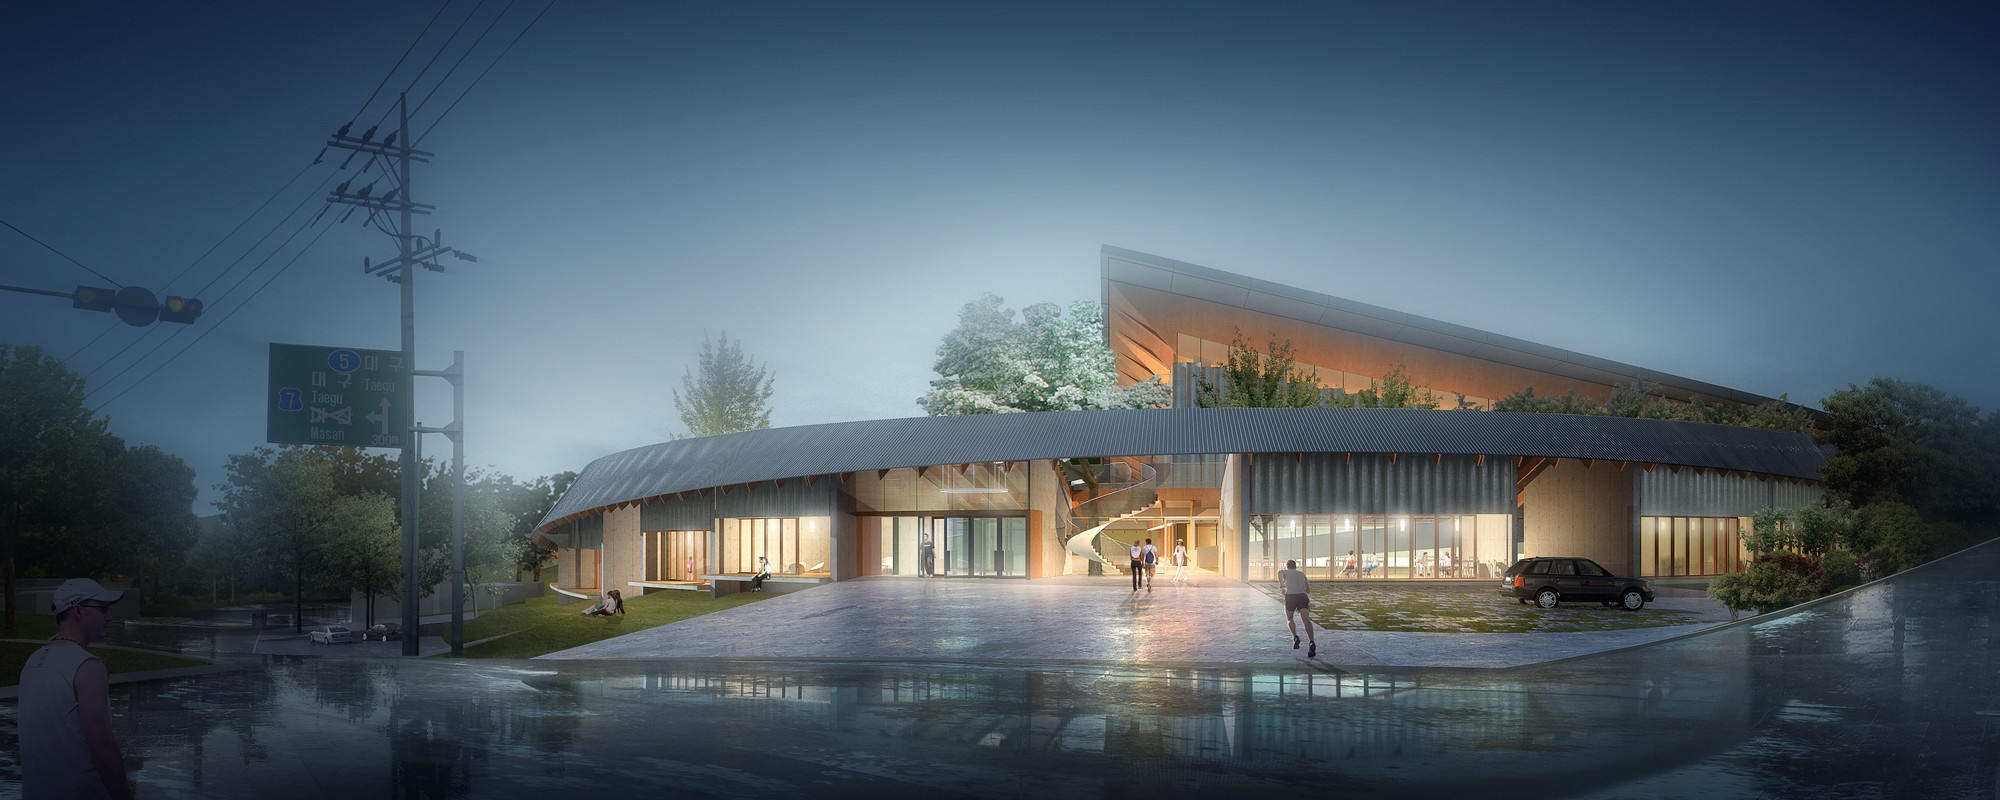 Competition Entry: NOA's Proposal for Dalseong Citizen's Gymnasium, Entrance. Image © Nomad Office Architects